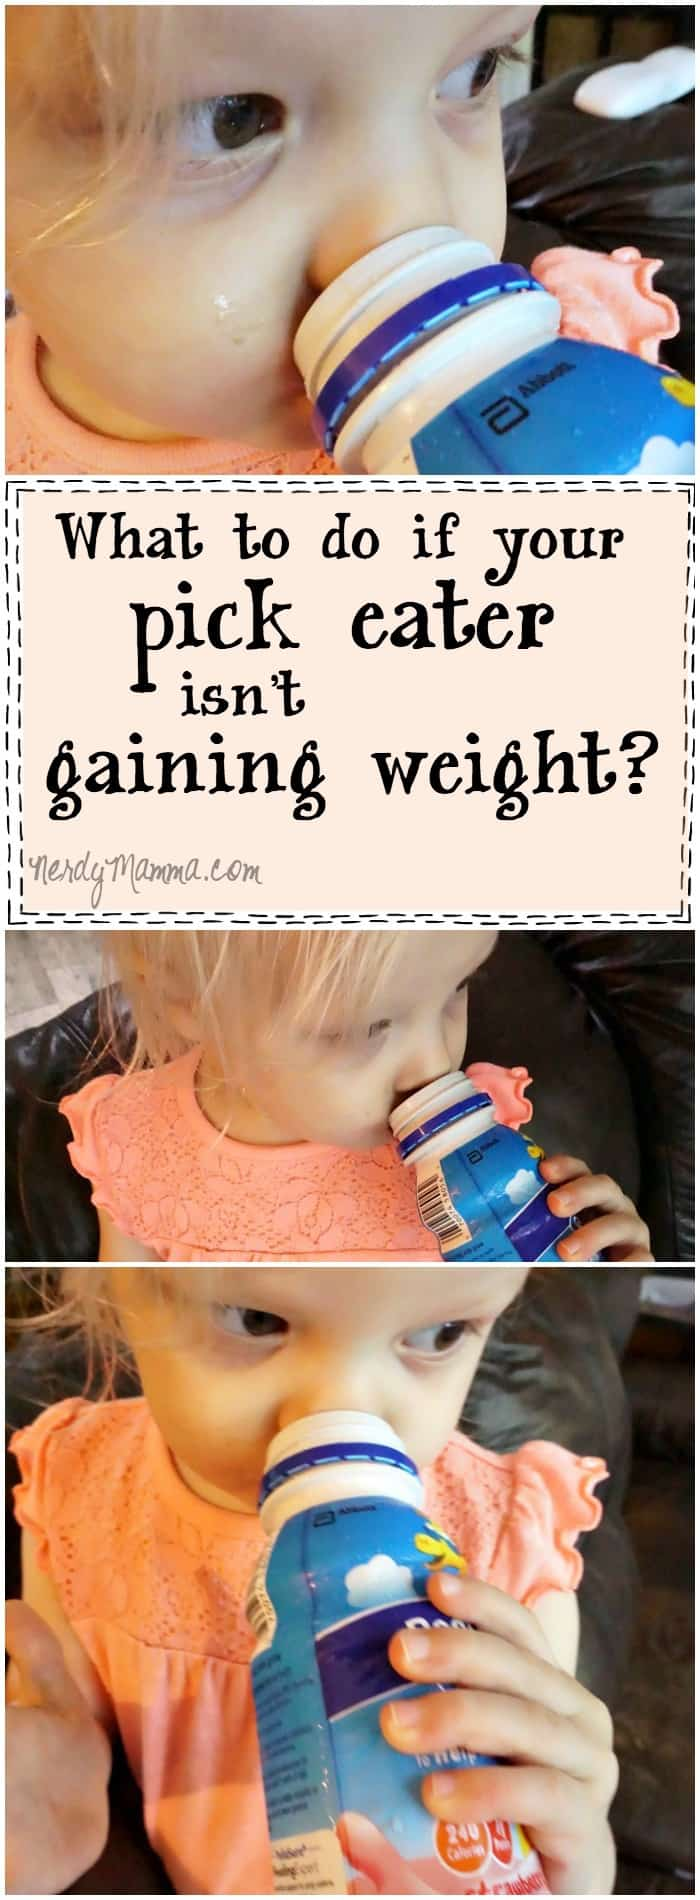 I love this mom's thoughts on what to do if your toddler isn't gaining weight. So simple--and easy. I could do this...